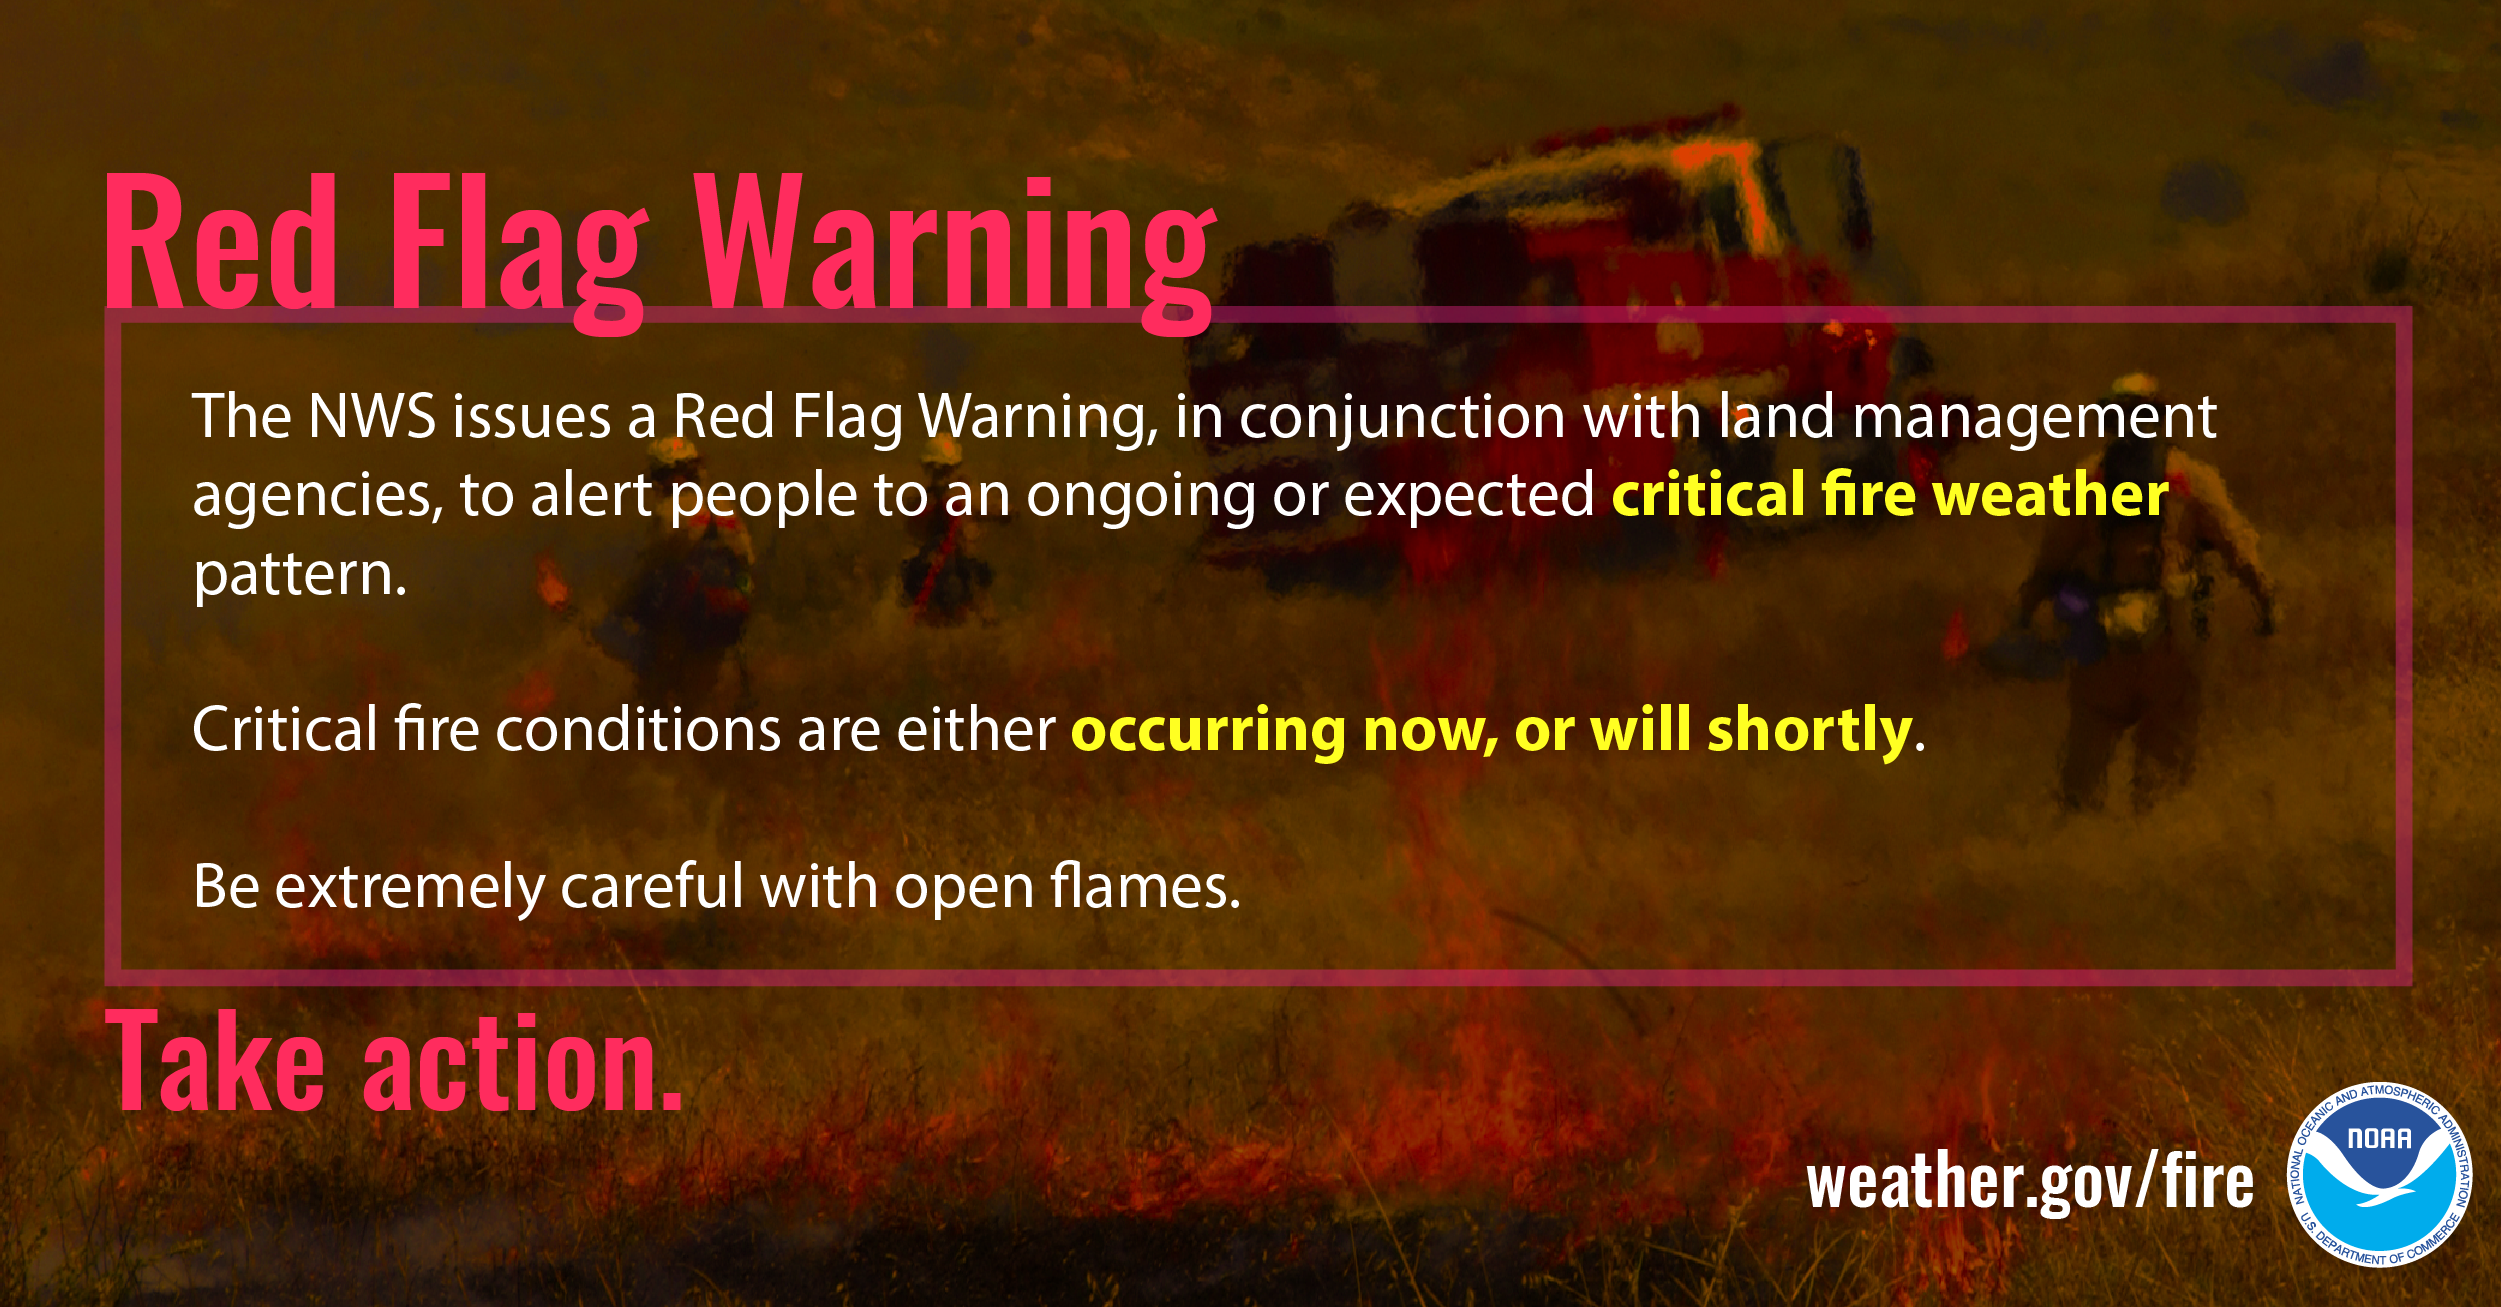 Red Flag Warning: Be extremely careful with open flames. The NWS issues a Red Flag Warning, in conjunction with land management agencies, to alert land managers to an ongoing or imminent critical fire weather pattern. Critical fire conditions are either occurring now, or will shortly.  Be extremely careful with open flames.